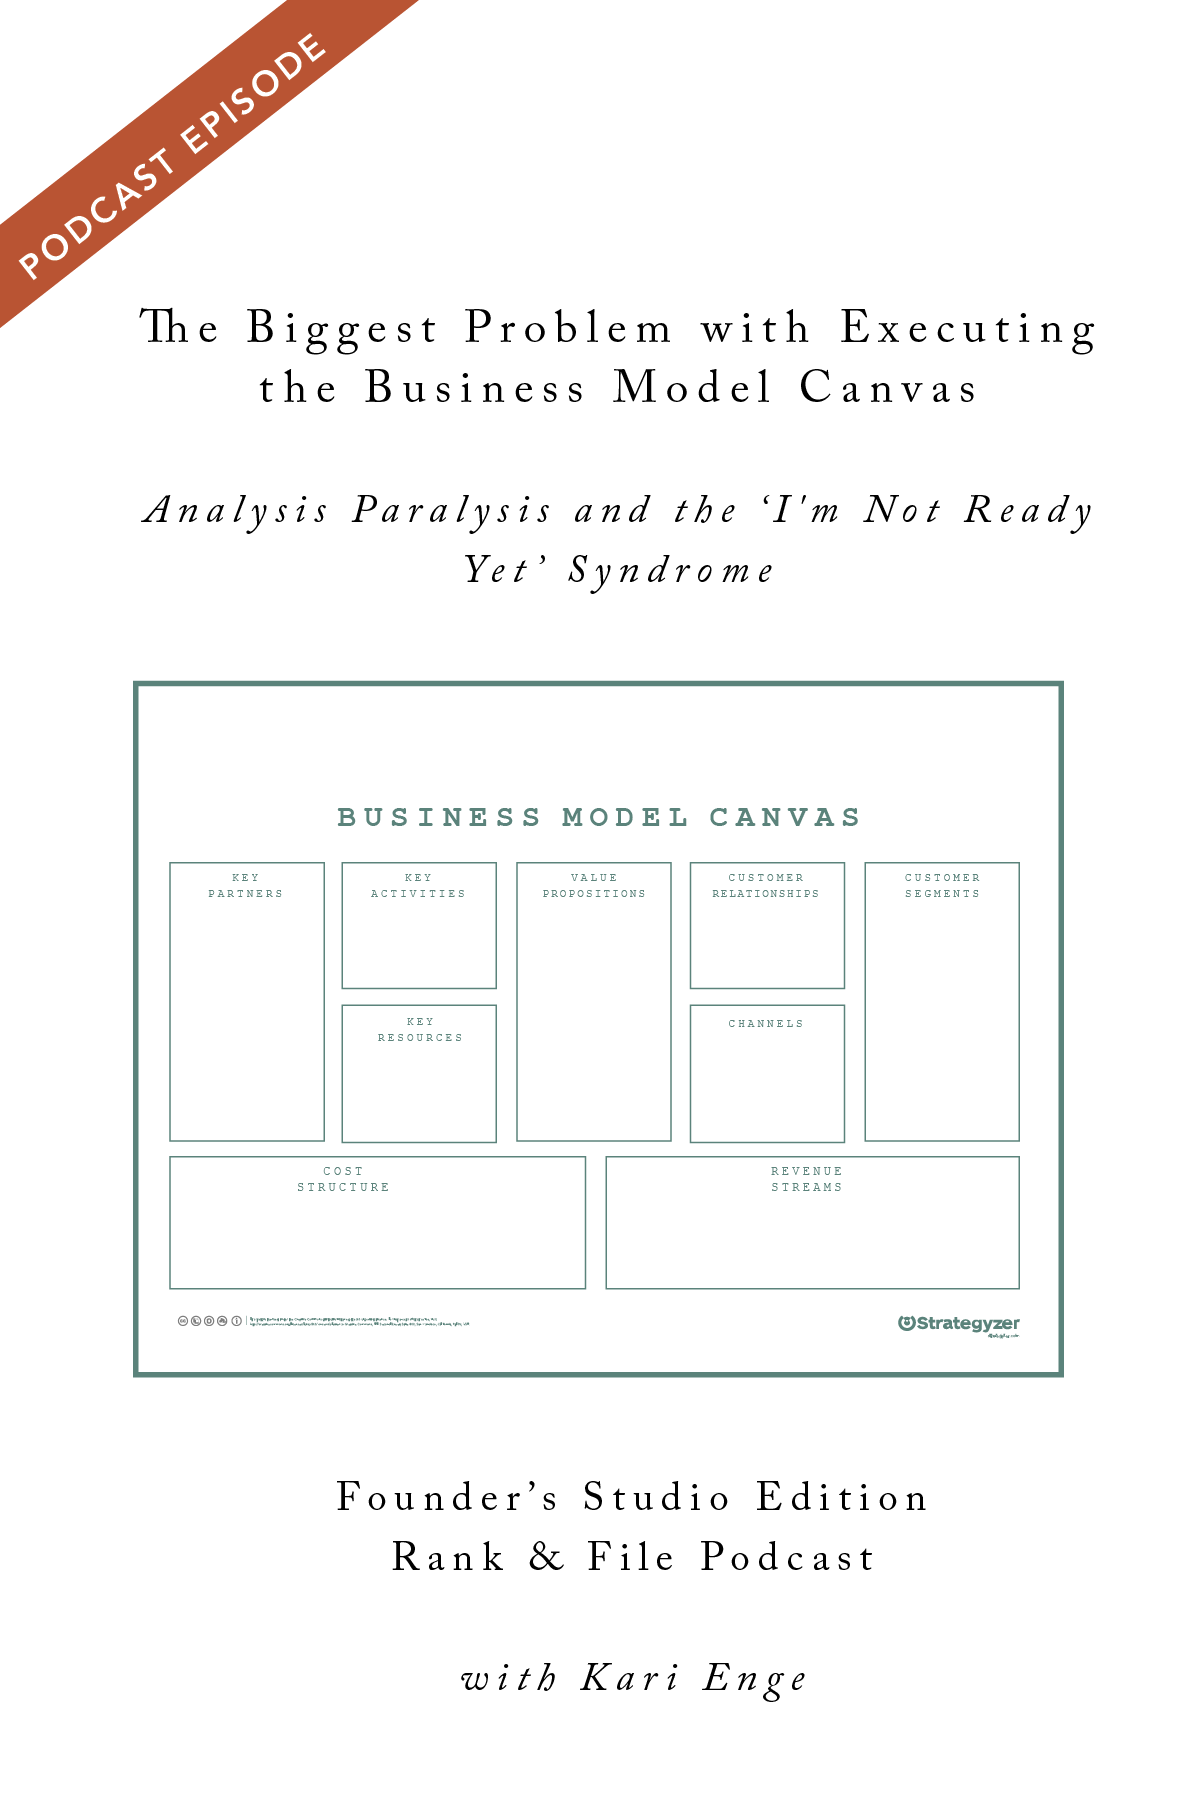 Business Model Canvas Part 3 The Biggest Problem With Executing Your Business Model Analysis Paralysis And The I M Not Ready Yet Syndrome Episode 20 Rank File Magazine